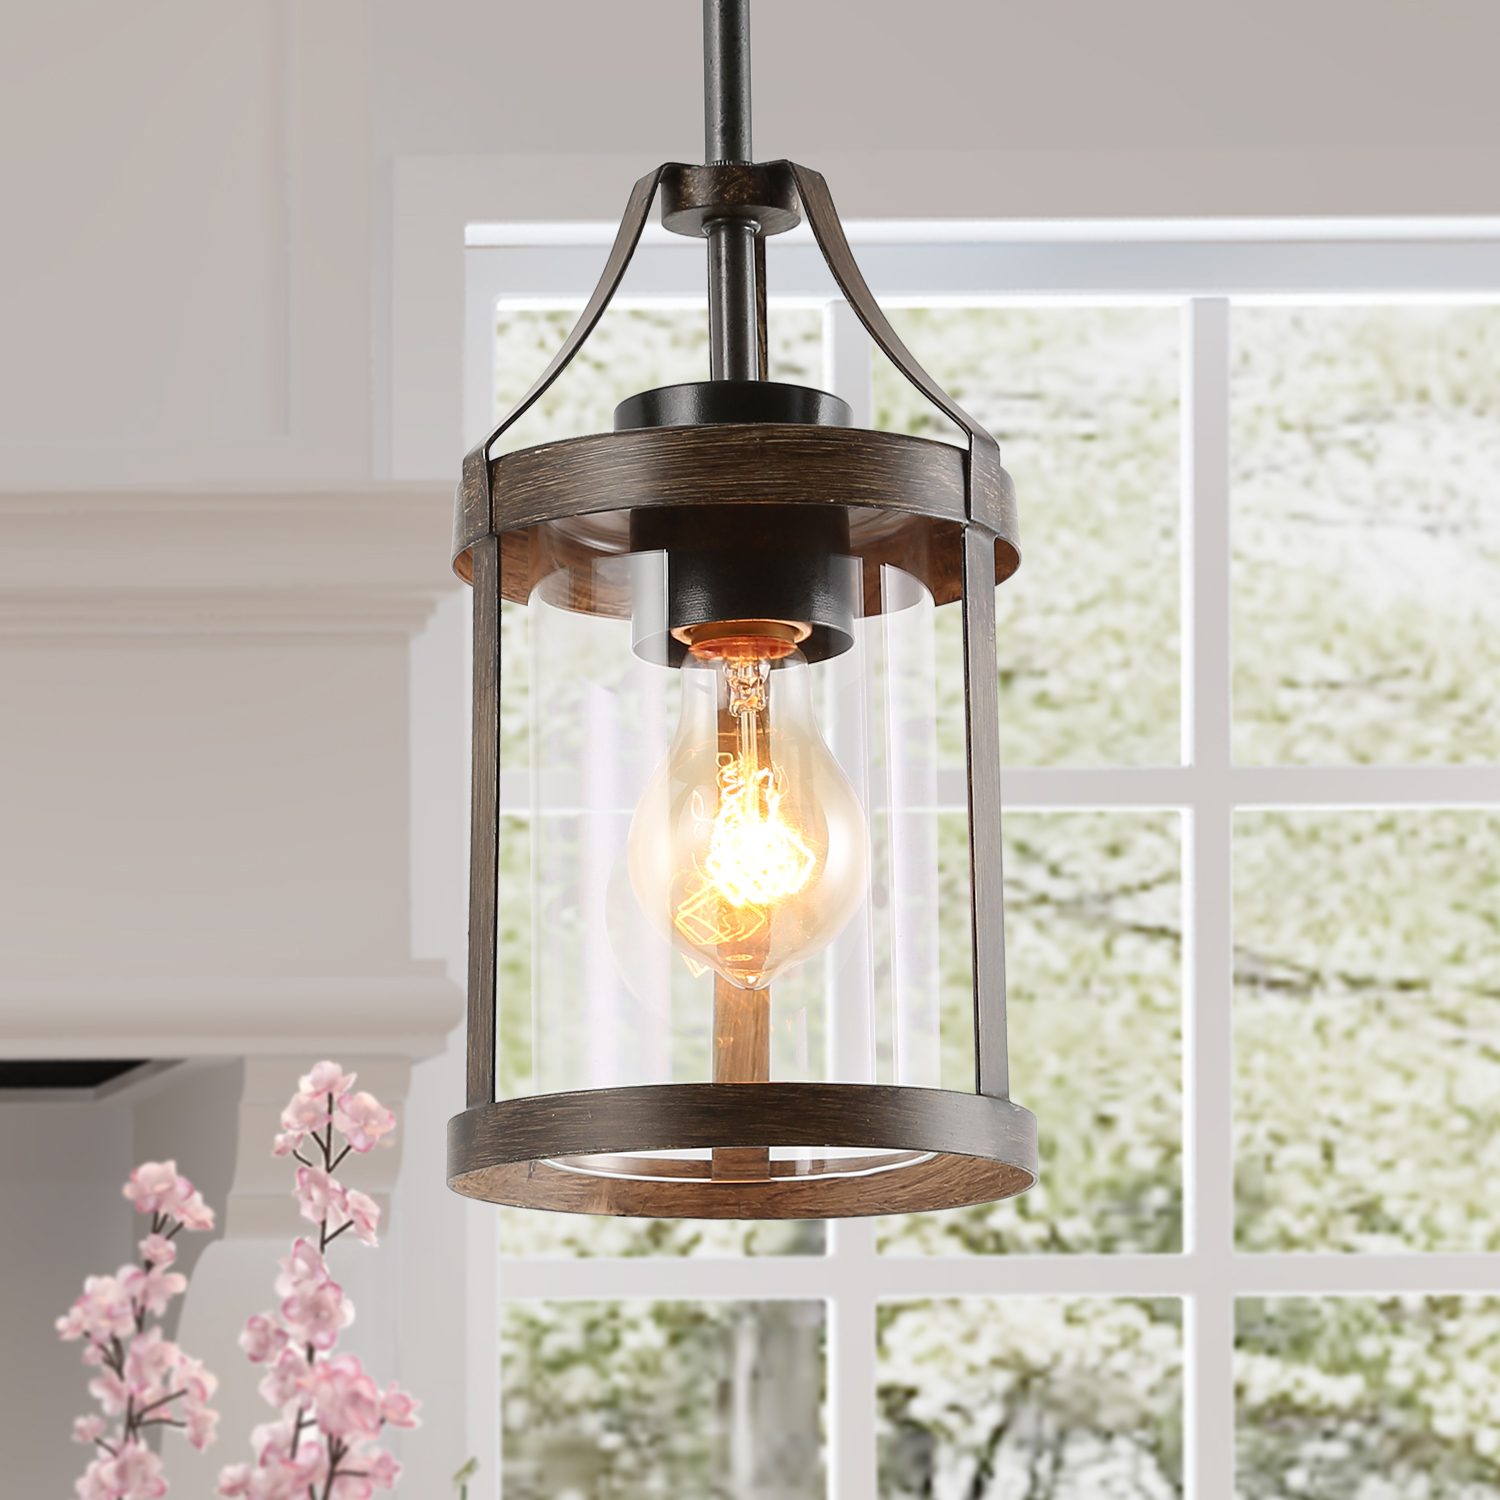 Farmhouse Kitchen Pendant Lights Faux Wood Hanging Ceiling Lighting For Island Dining Room Living Room Walmart Com Walmart Com